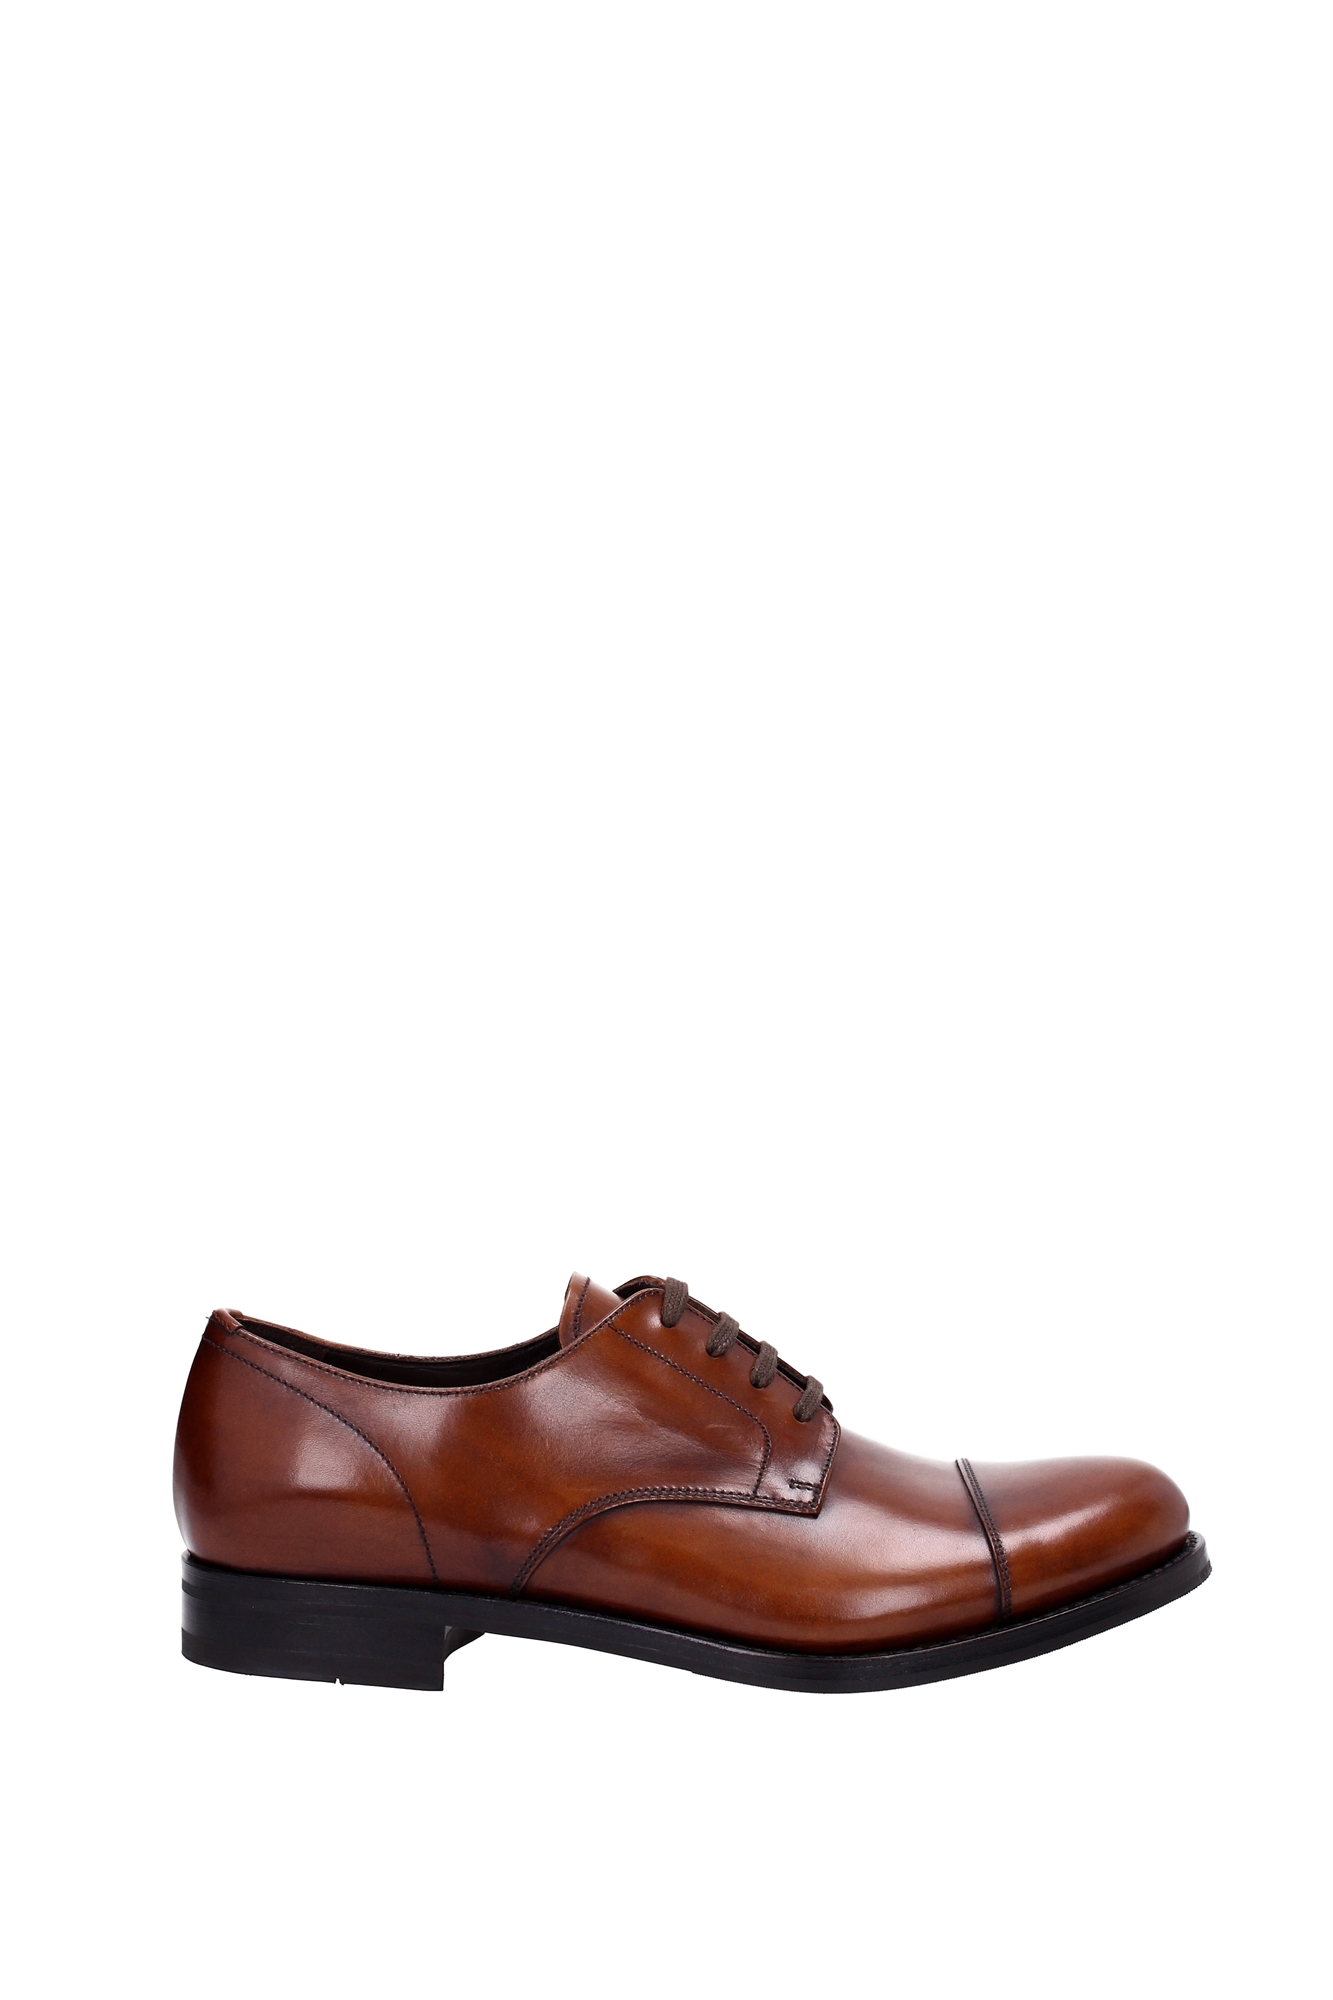 lace up shoes prada leather brown 2ea108bruciato